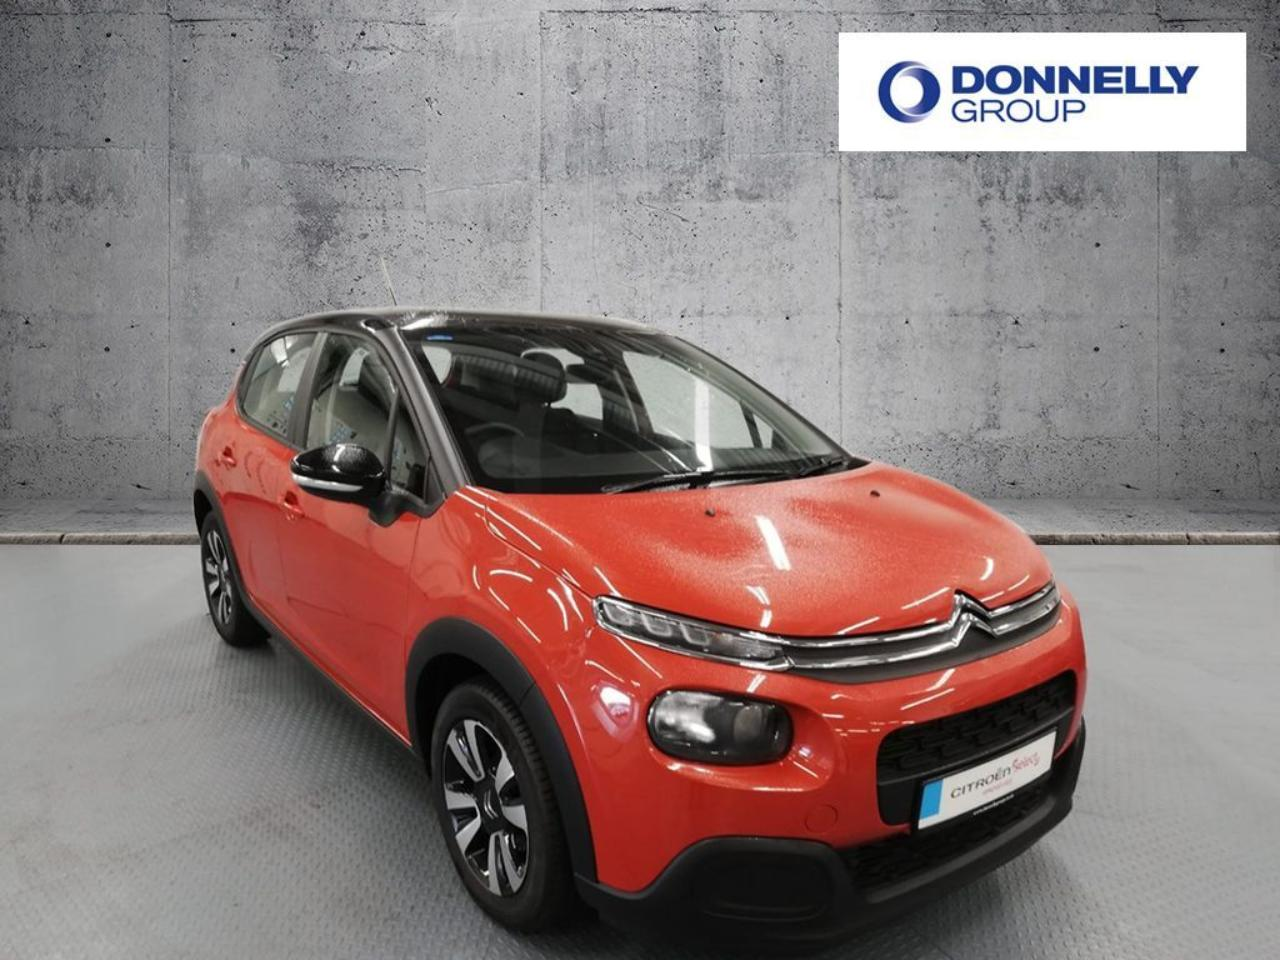 Citroën C3 1.2 PureTech 82 Feel 5dr